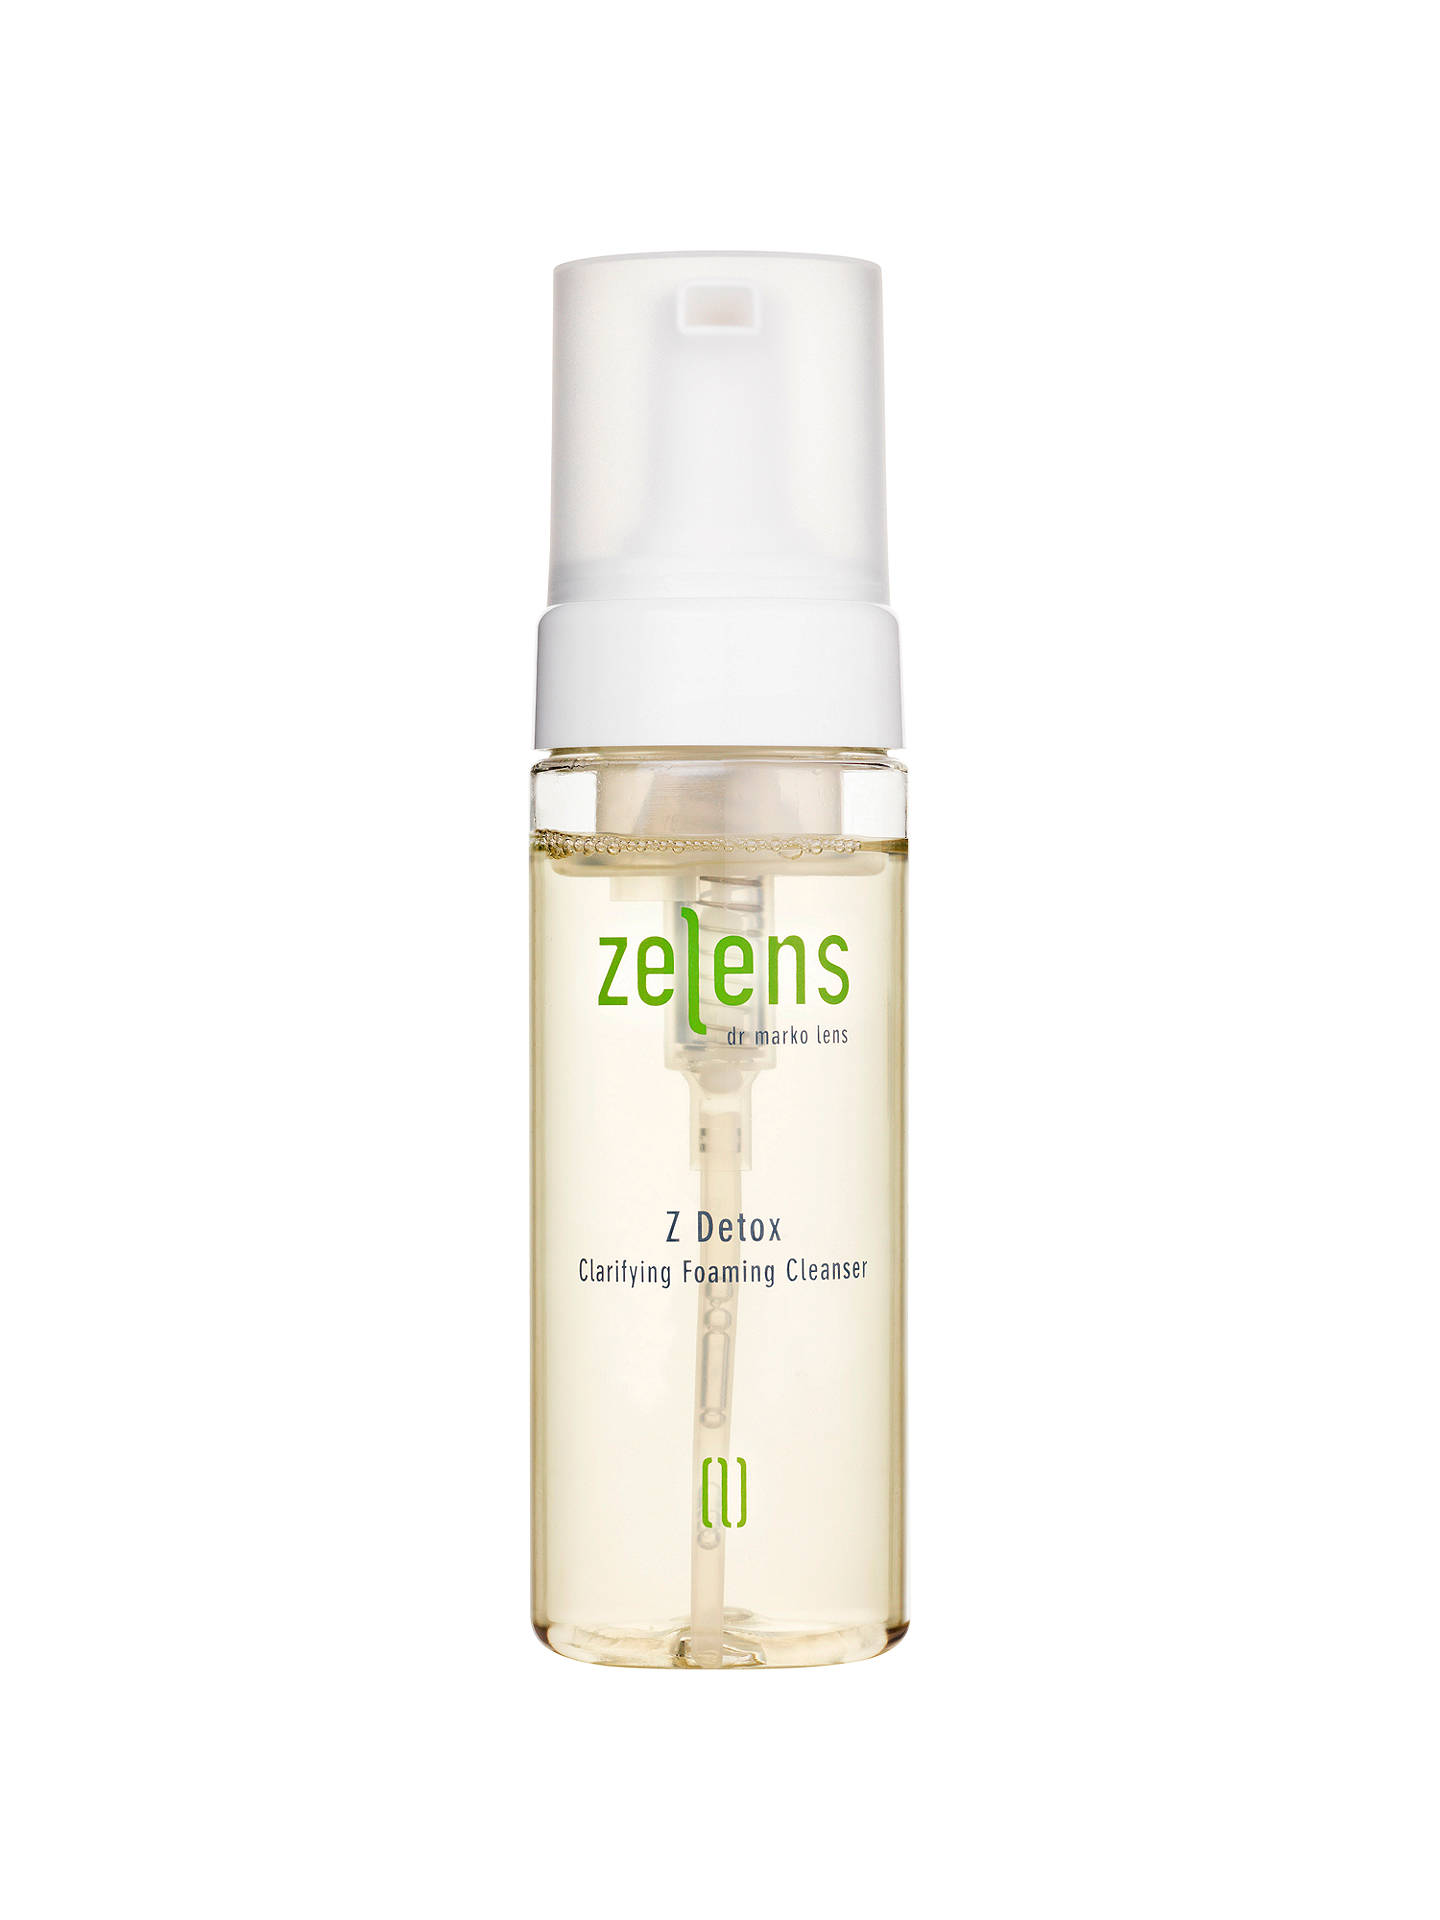 BuyZelens Z Detox Clarifying Foaming Cleanser, 150ml Online at johnlewis.com